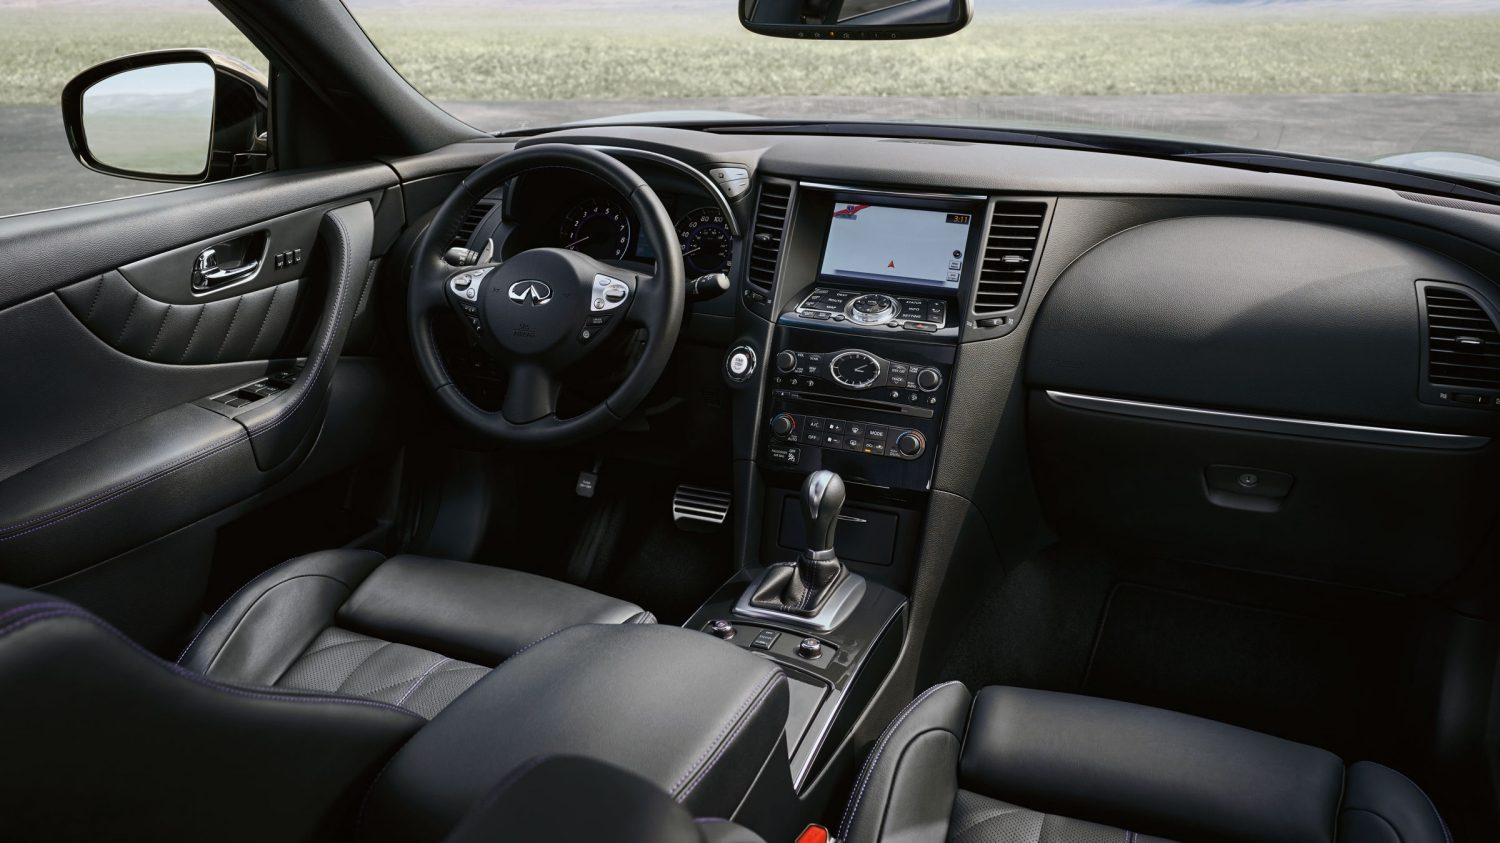 2018 INFINITI QX70 Connectivity